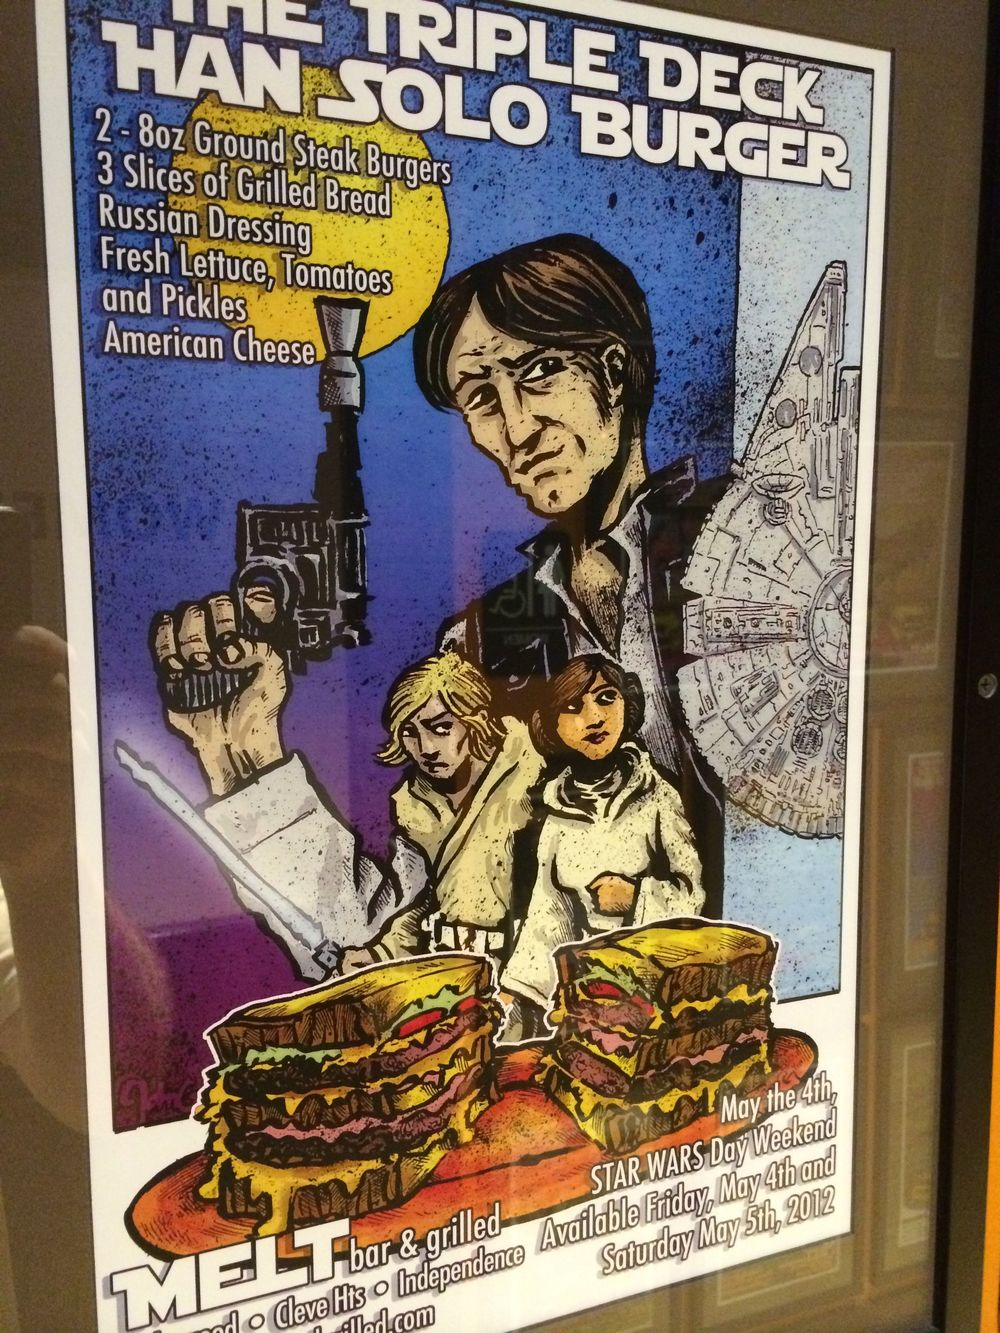 The Triple Deck Han Solo Burger